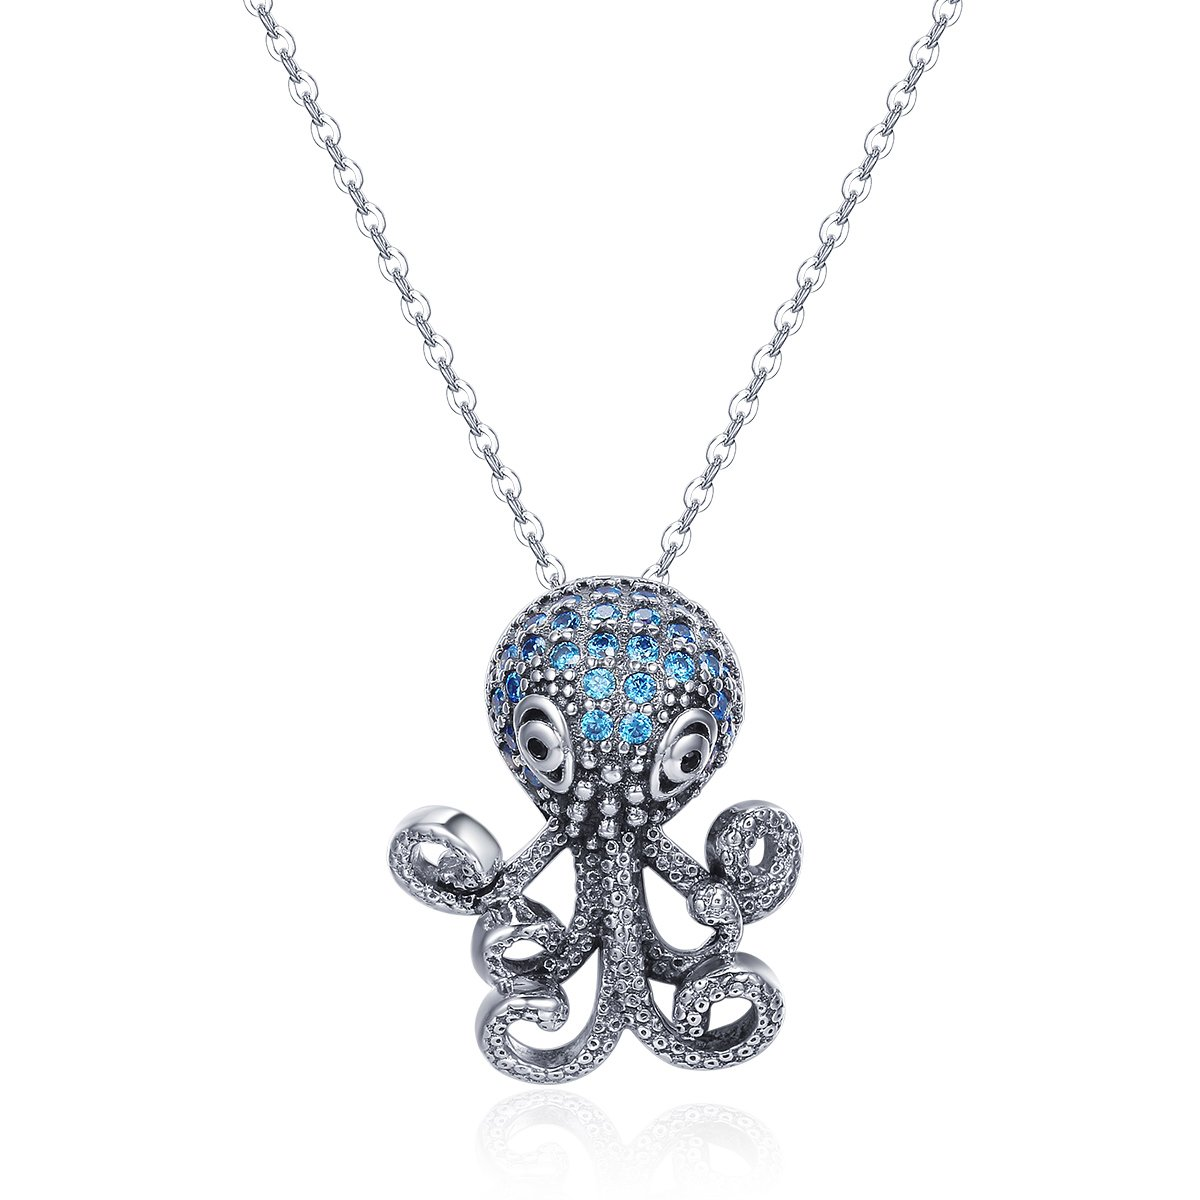 100% 925 Sterling Silver Fancy Octopus Marine Animal Clear CZ Pendant Necklace Vintage Punk Style Silver Jewelry NewL necklace-79